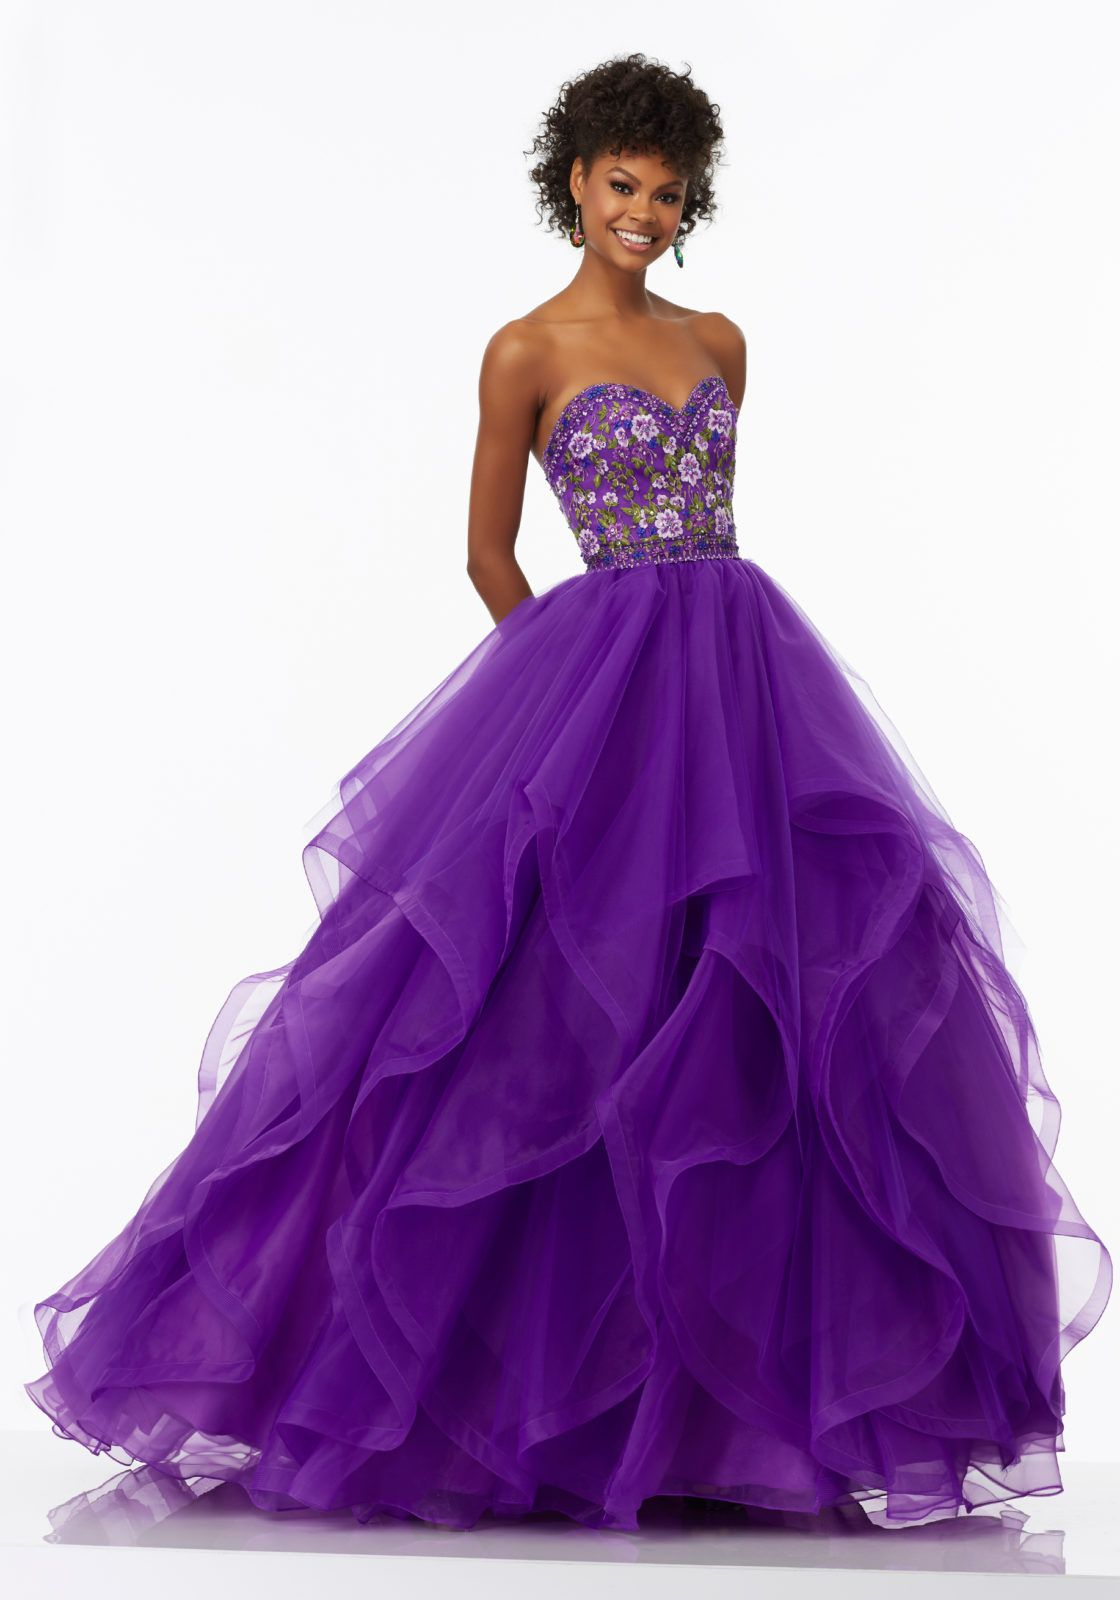 Mori Lee Floral Prom Dress | Ball Gown Prom Dresses | Pinterest